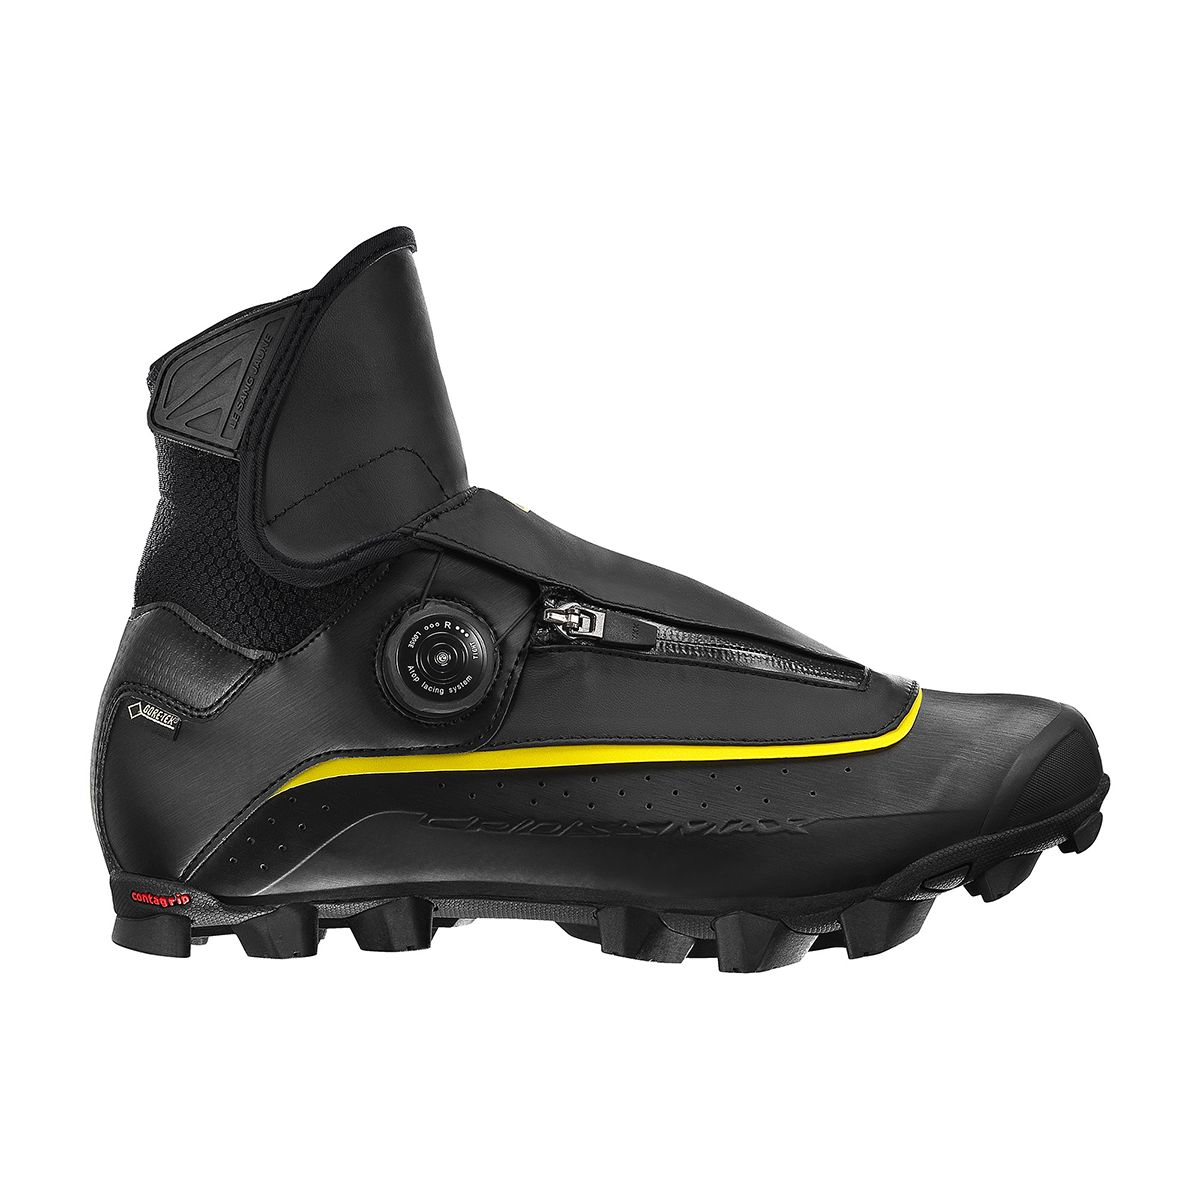 CROSSMAX SL PRO THERMO Winter-MTB-Schuhe